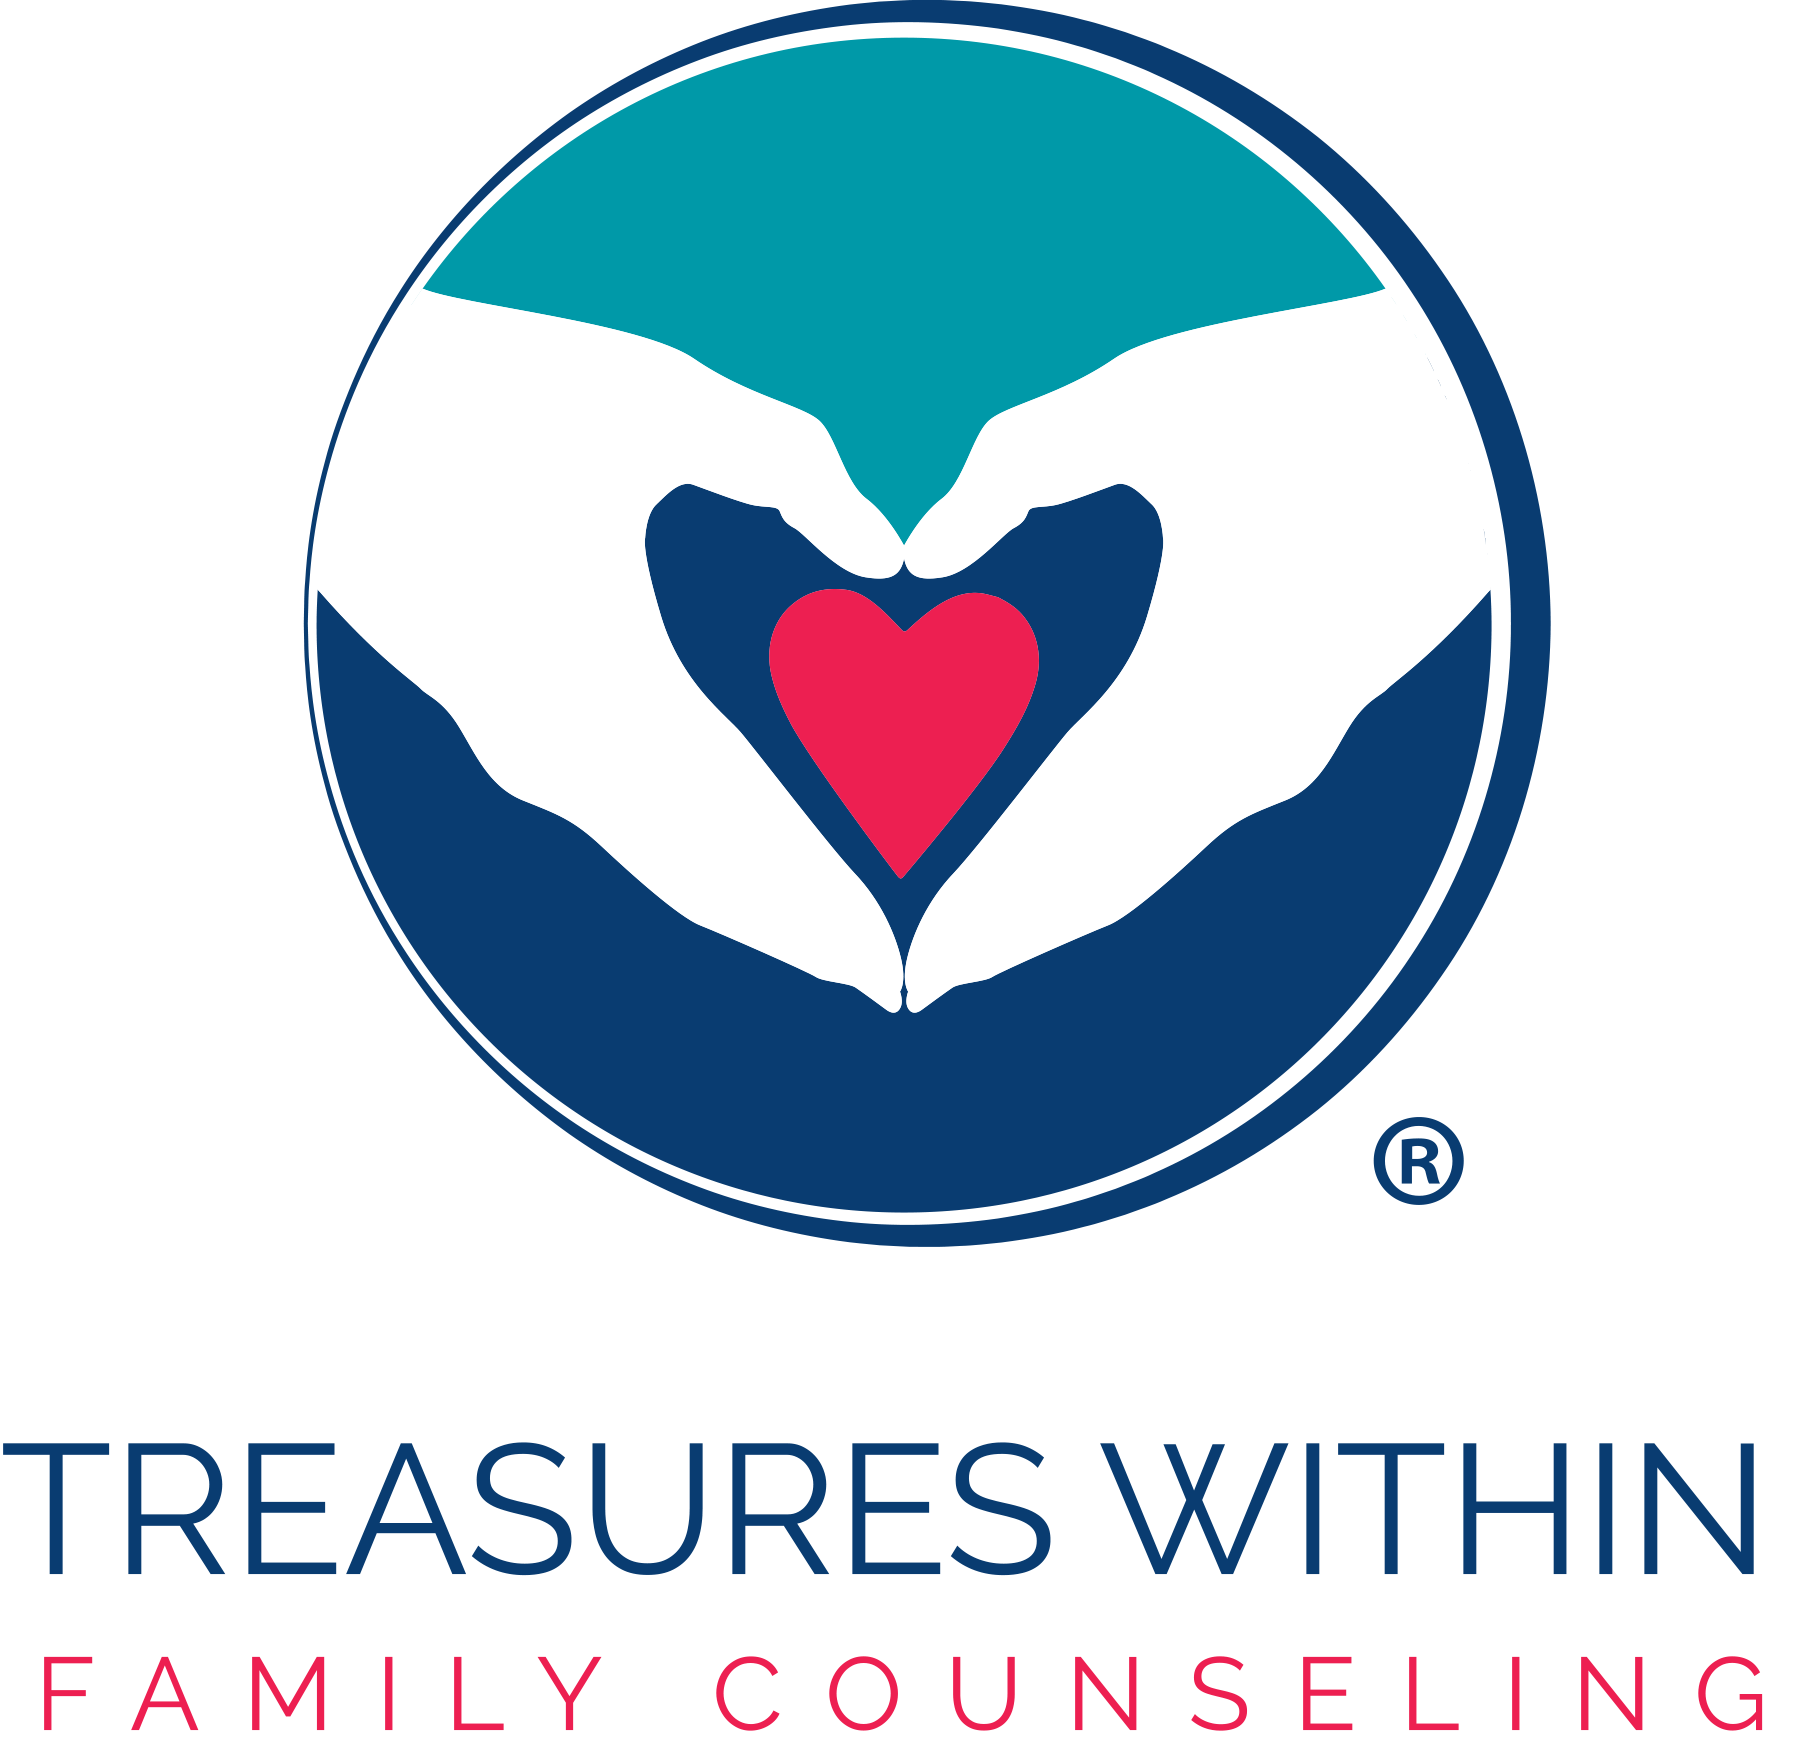 Treasures Within Family Counseling, Inc. Logo